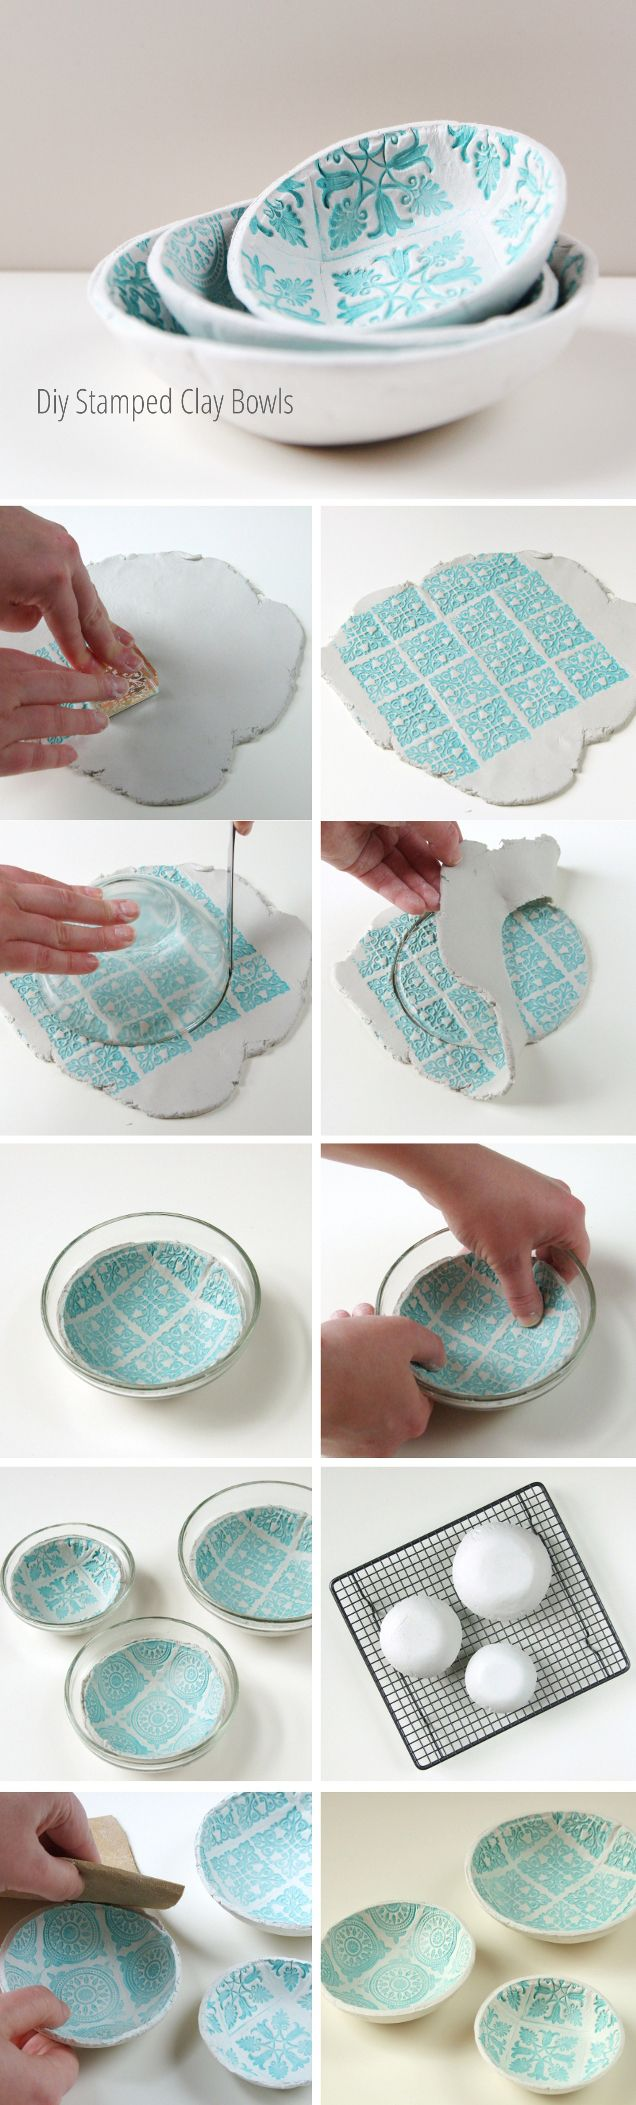 Diy Stamped Clay Bowls #DIY #crafts